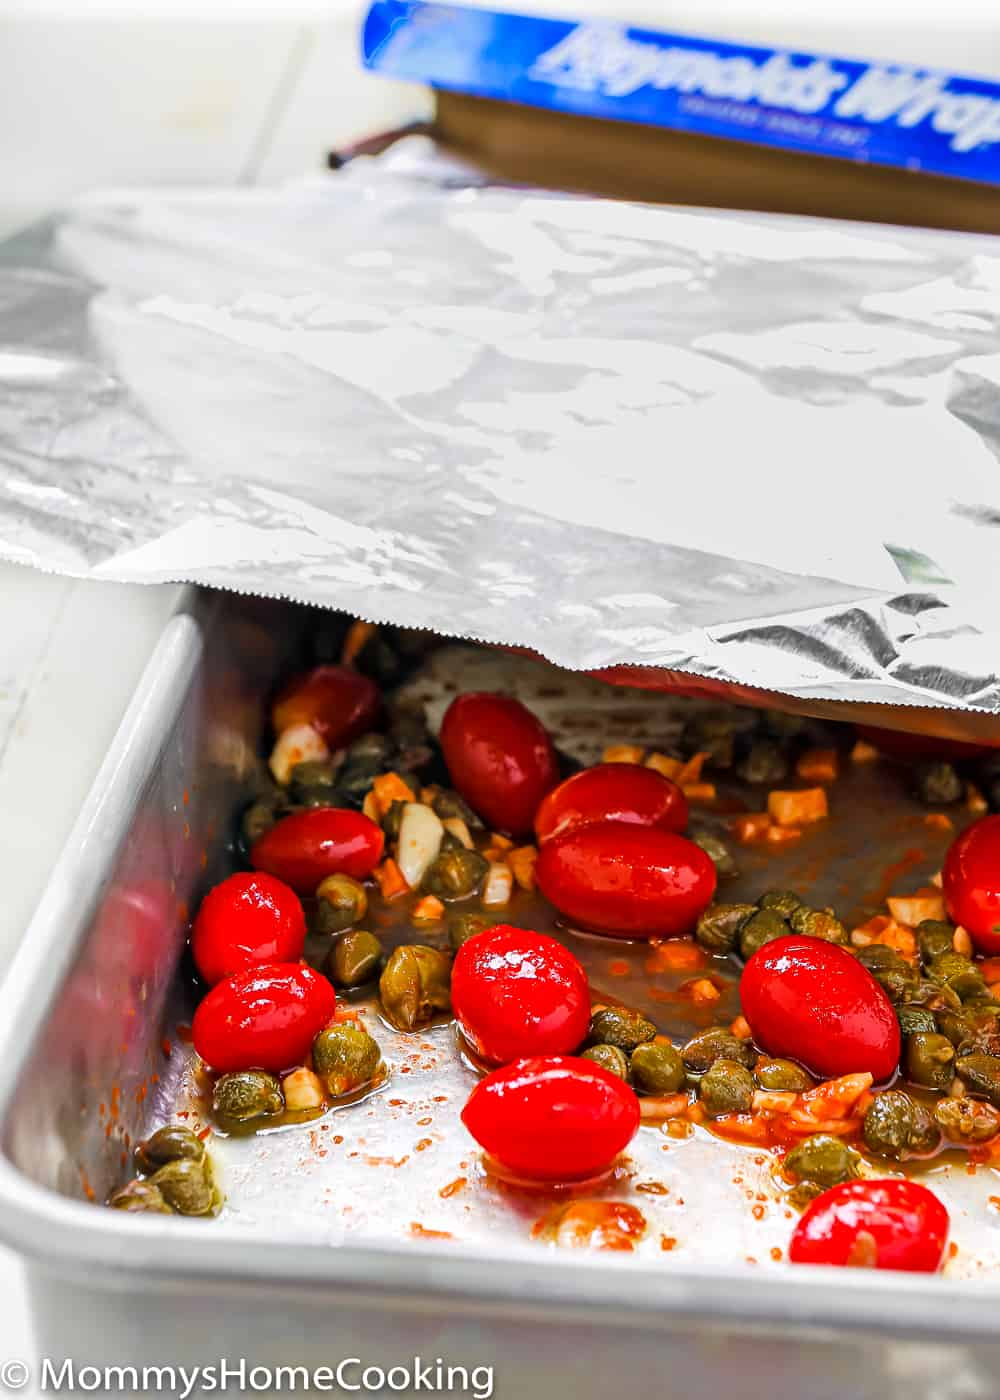 Easy roasted tomatoes and cappers in a baking pan cover with foil